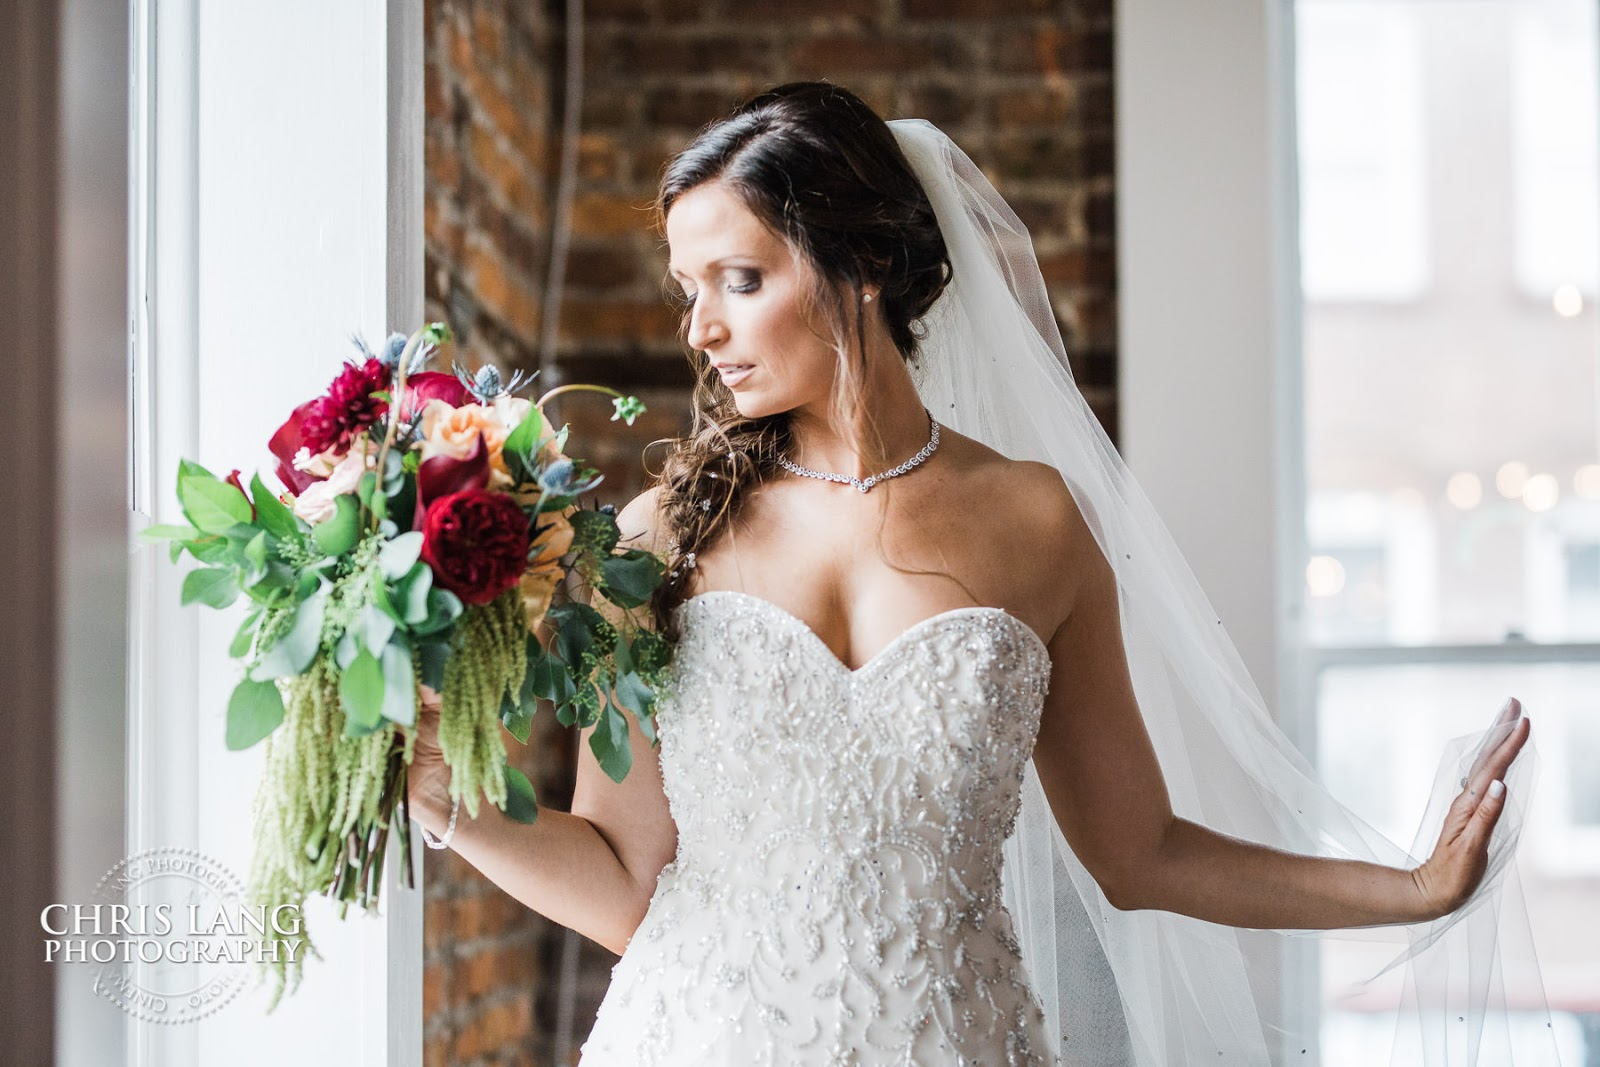 belle vue - wilmington  nc - bride- wedding dress - bridal bouquet - bridal jewelry - wedding ideas -  bridal pictures - wilmington nc wedding photographers